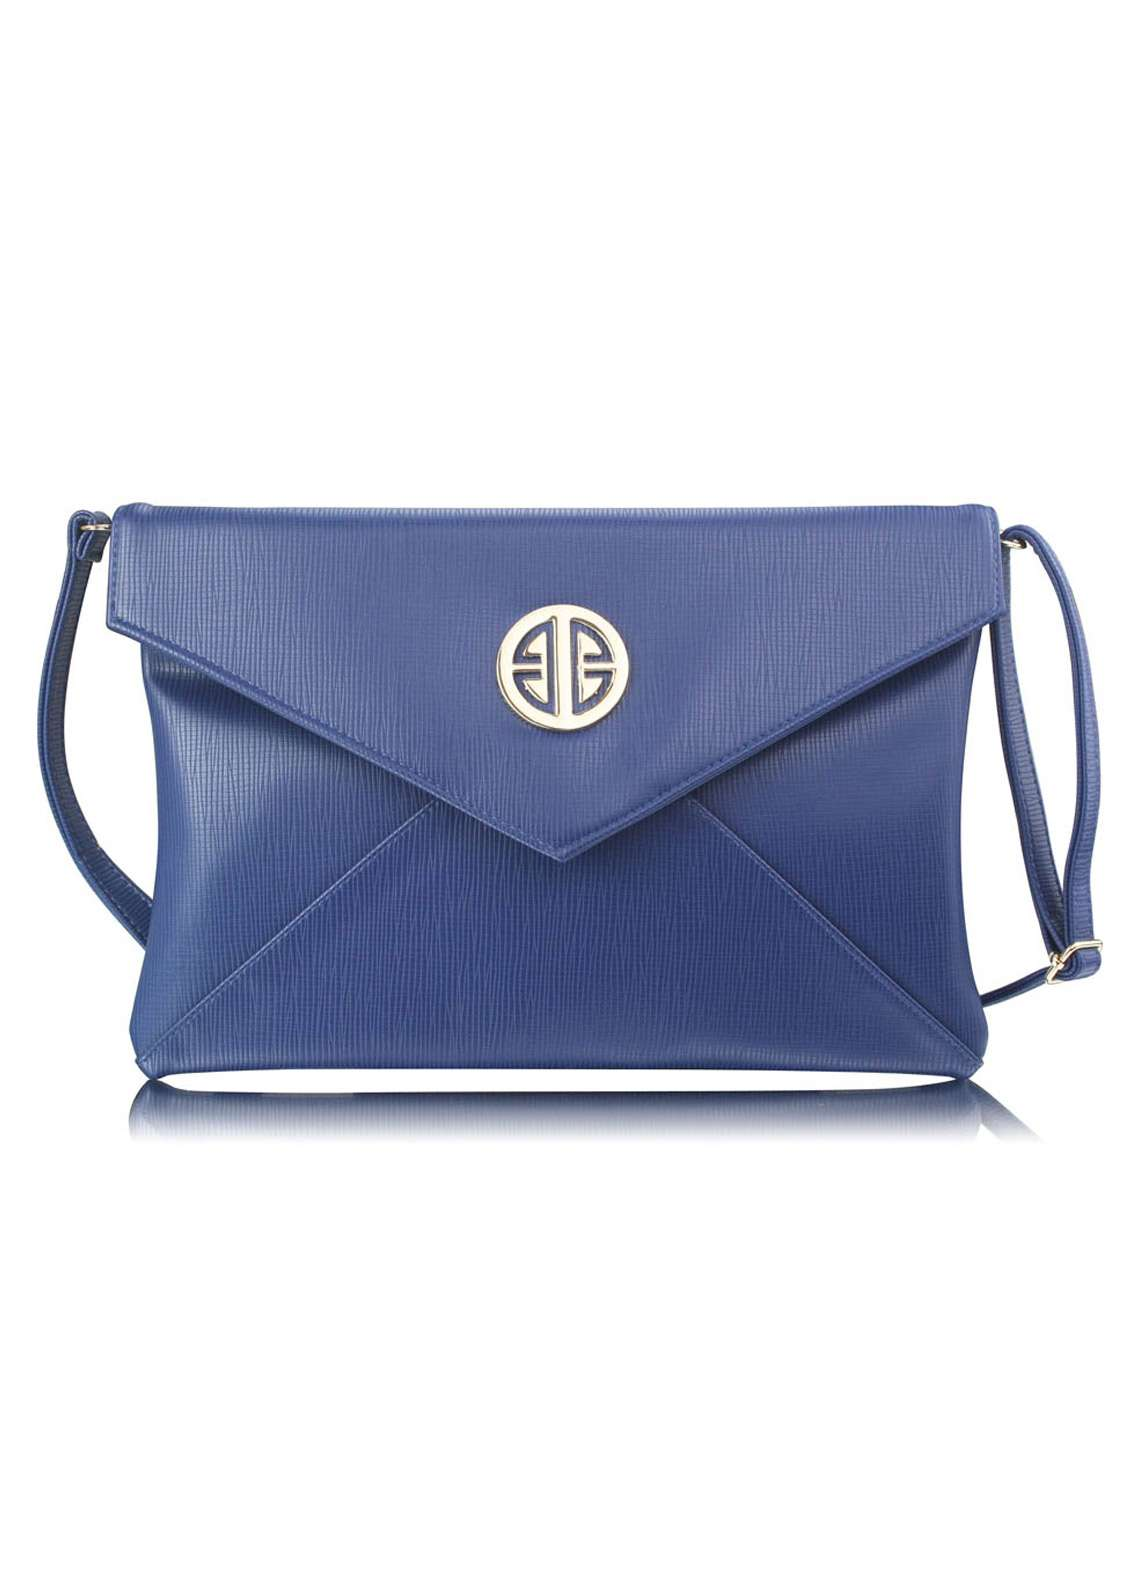 Fashion Only Satin Clutch Bags for Women Navy